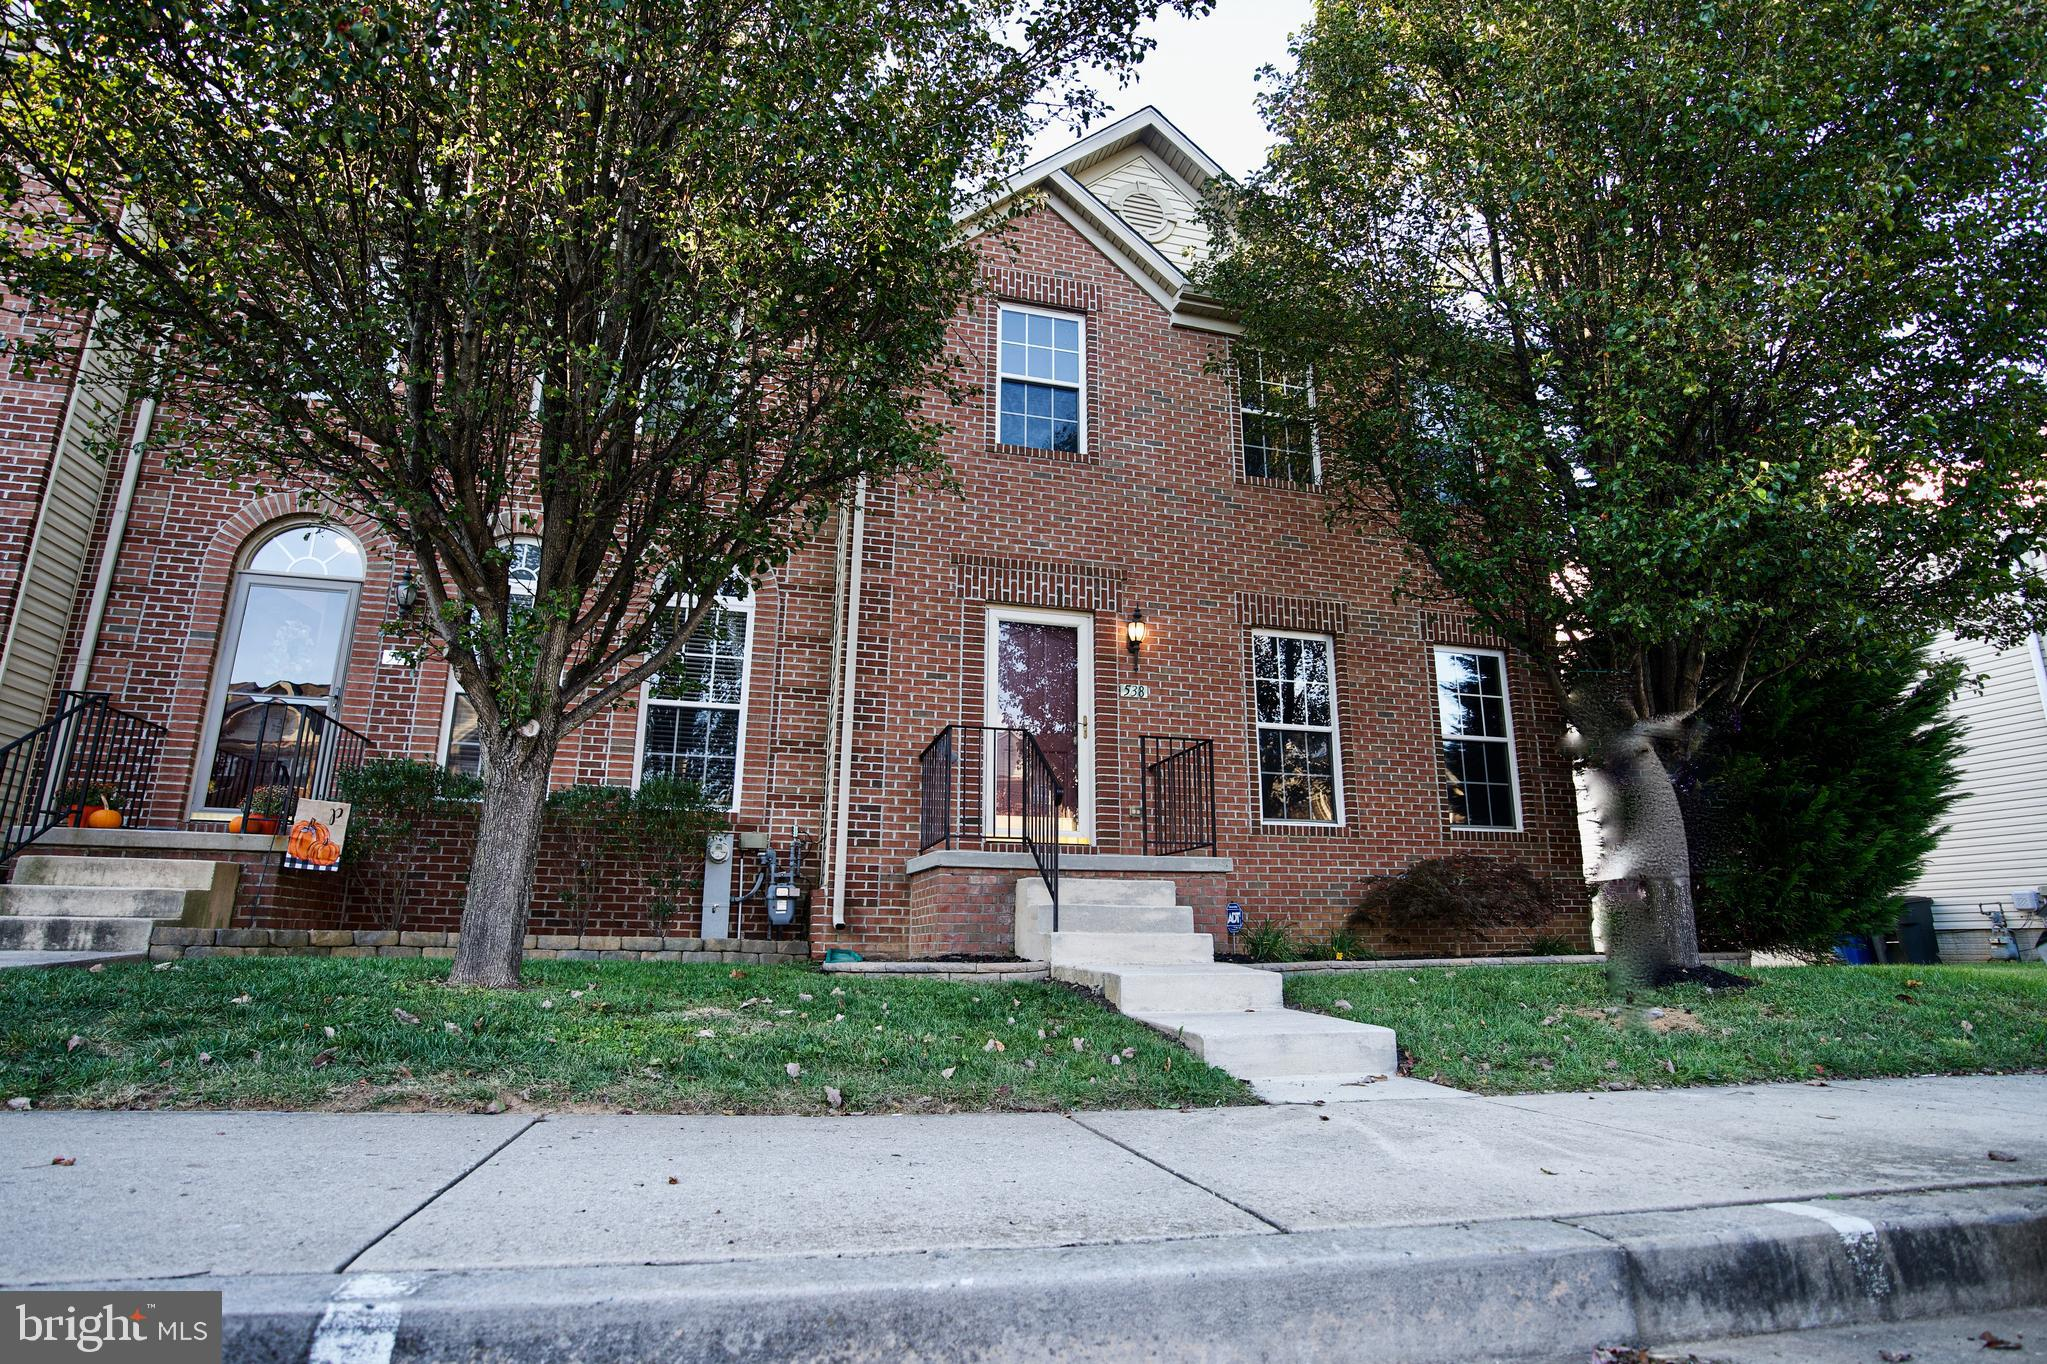 3 Bedroom 3.5 Bath End of Group Townhome located in the sought after MONMOUTH MEADOWS community. The